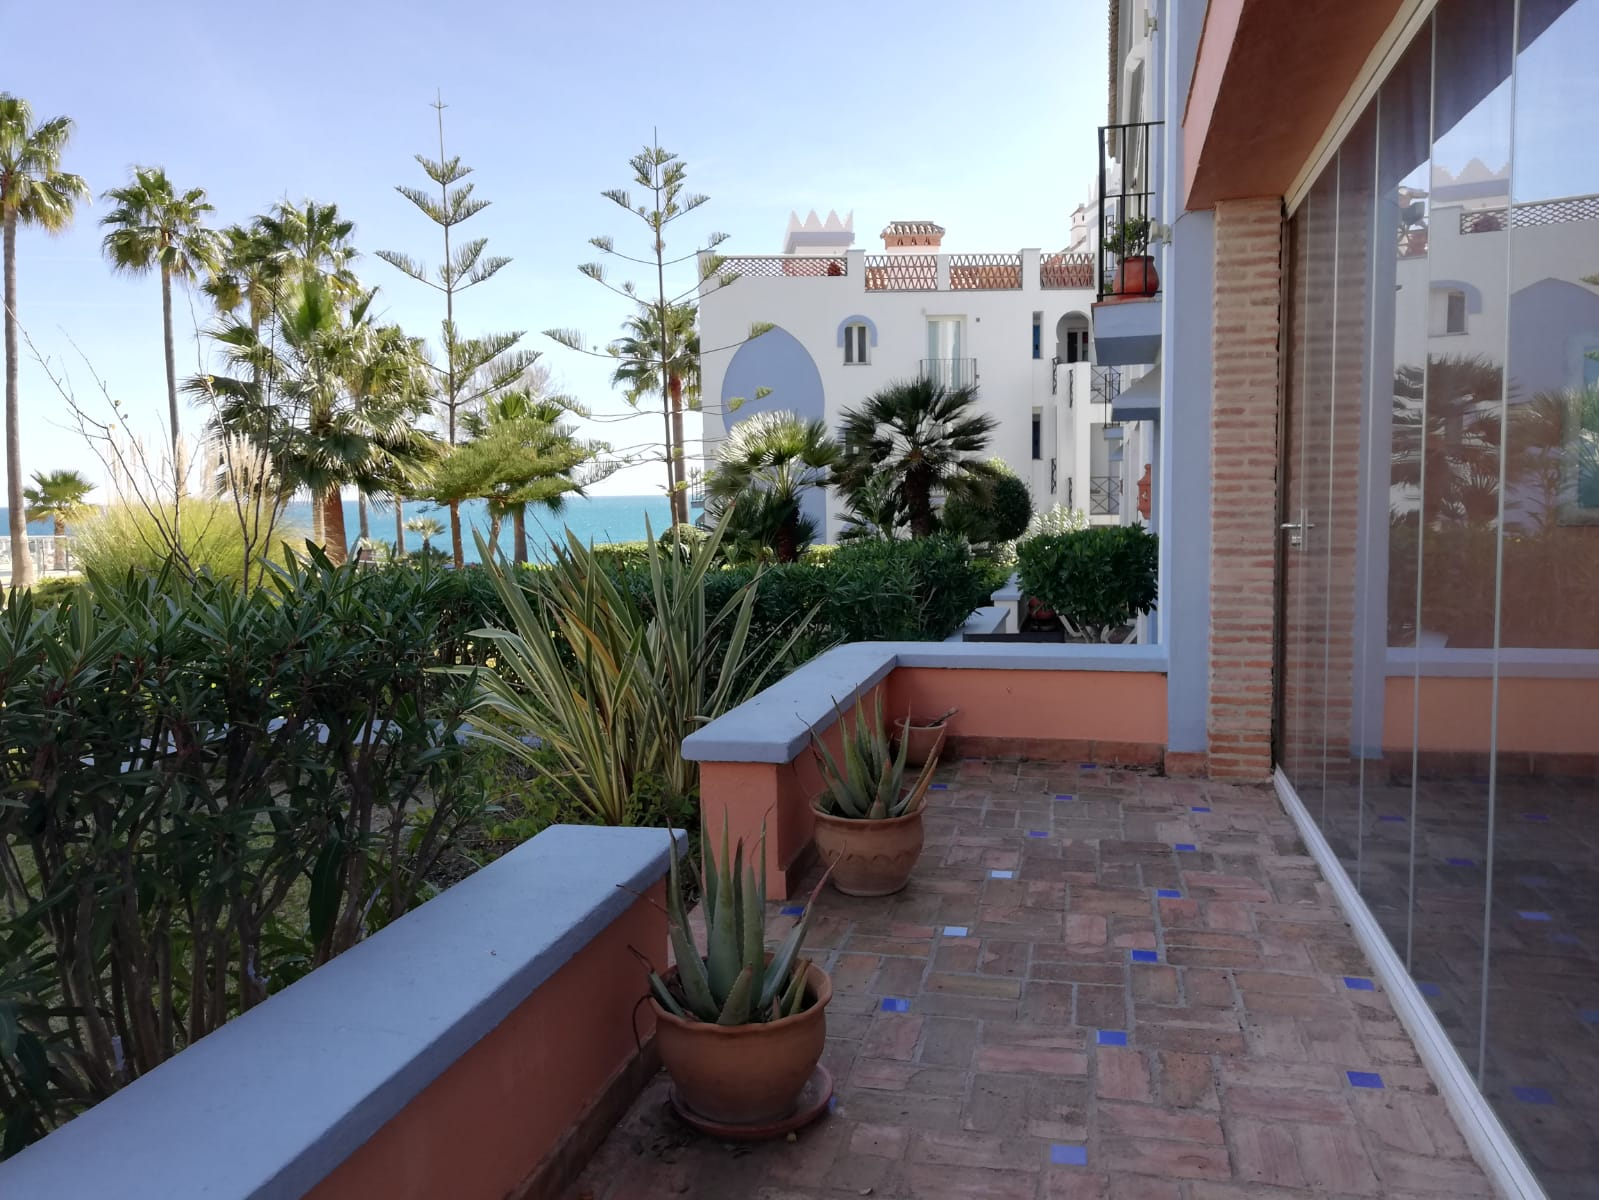 Ground floor apartment in beach front community in Casares - mibgroup.es